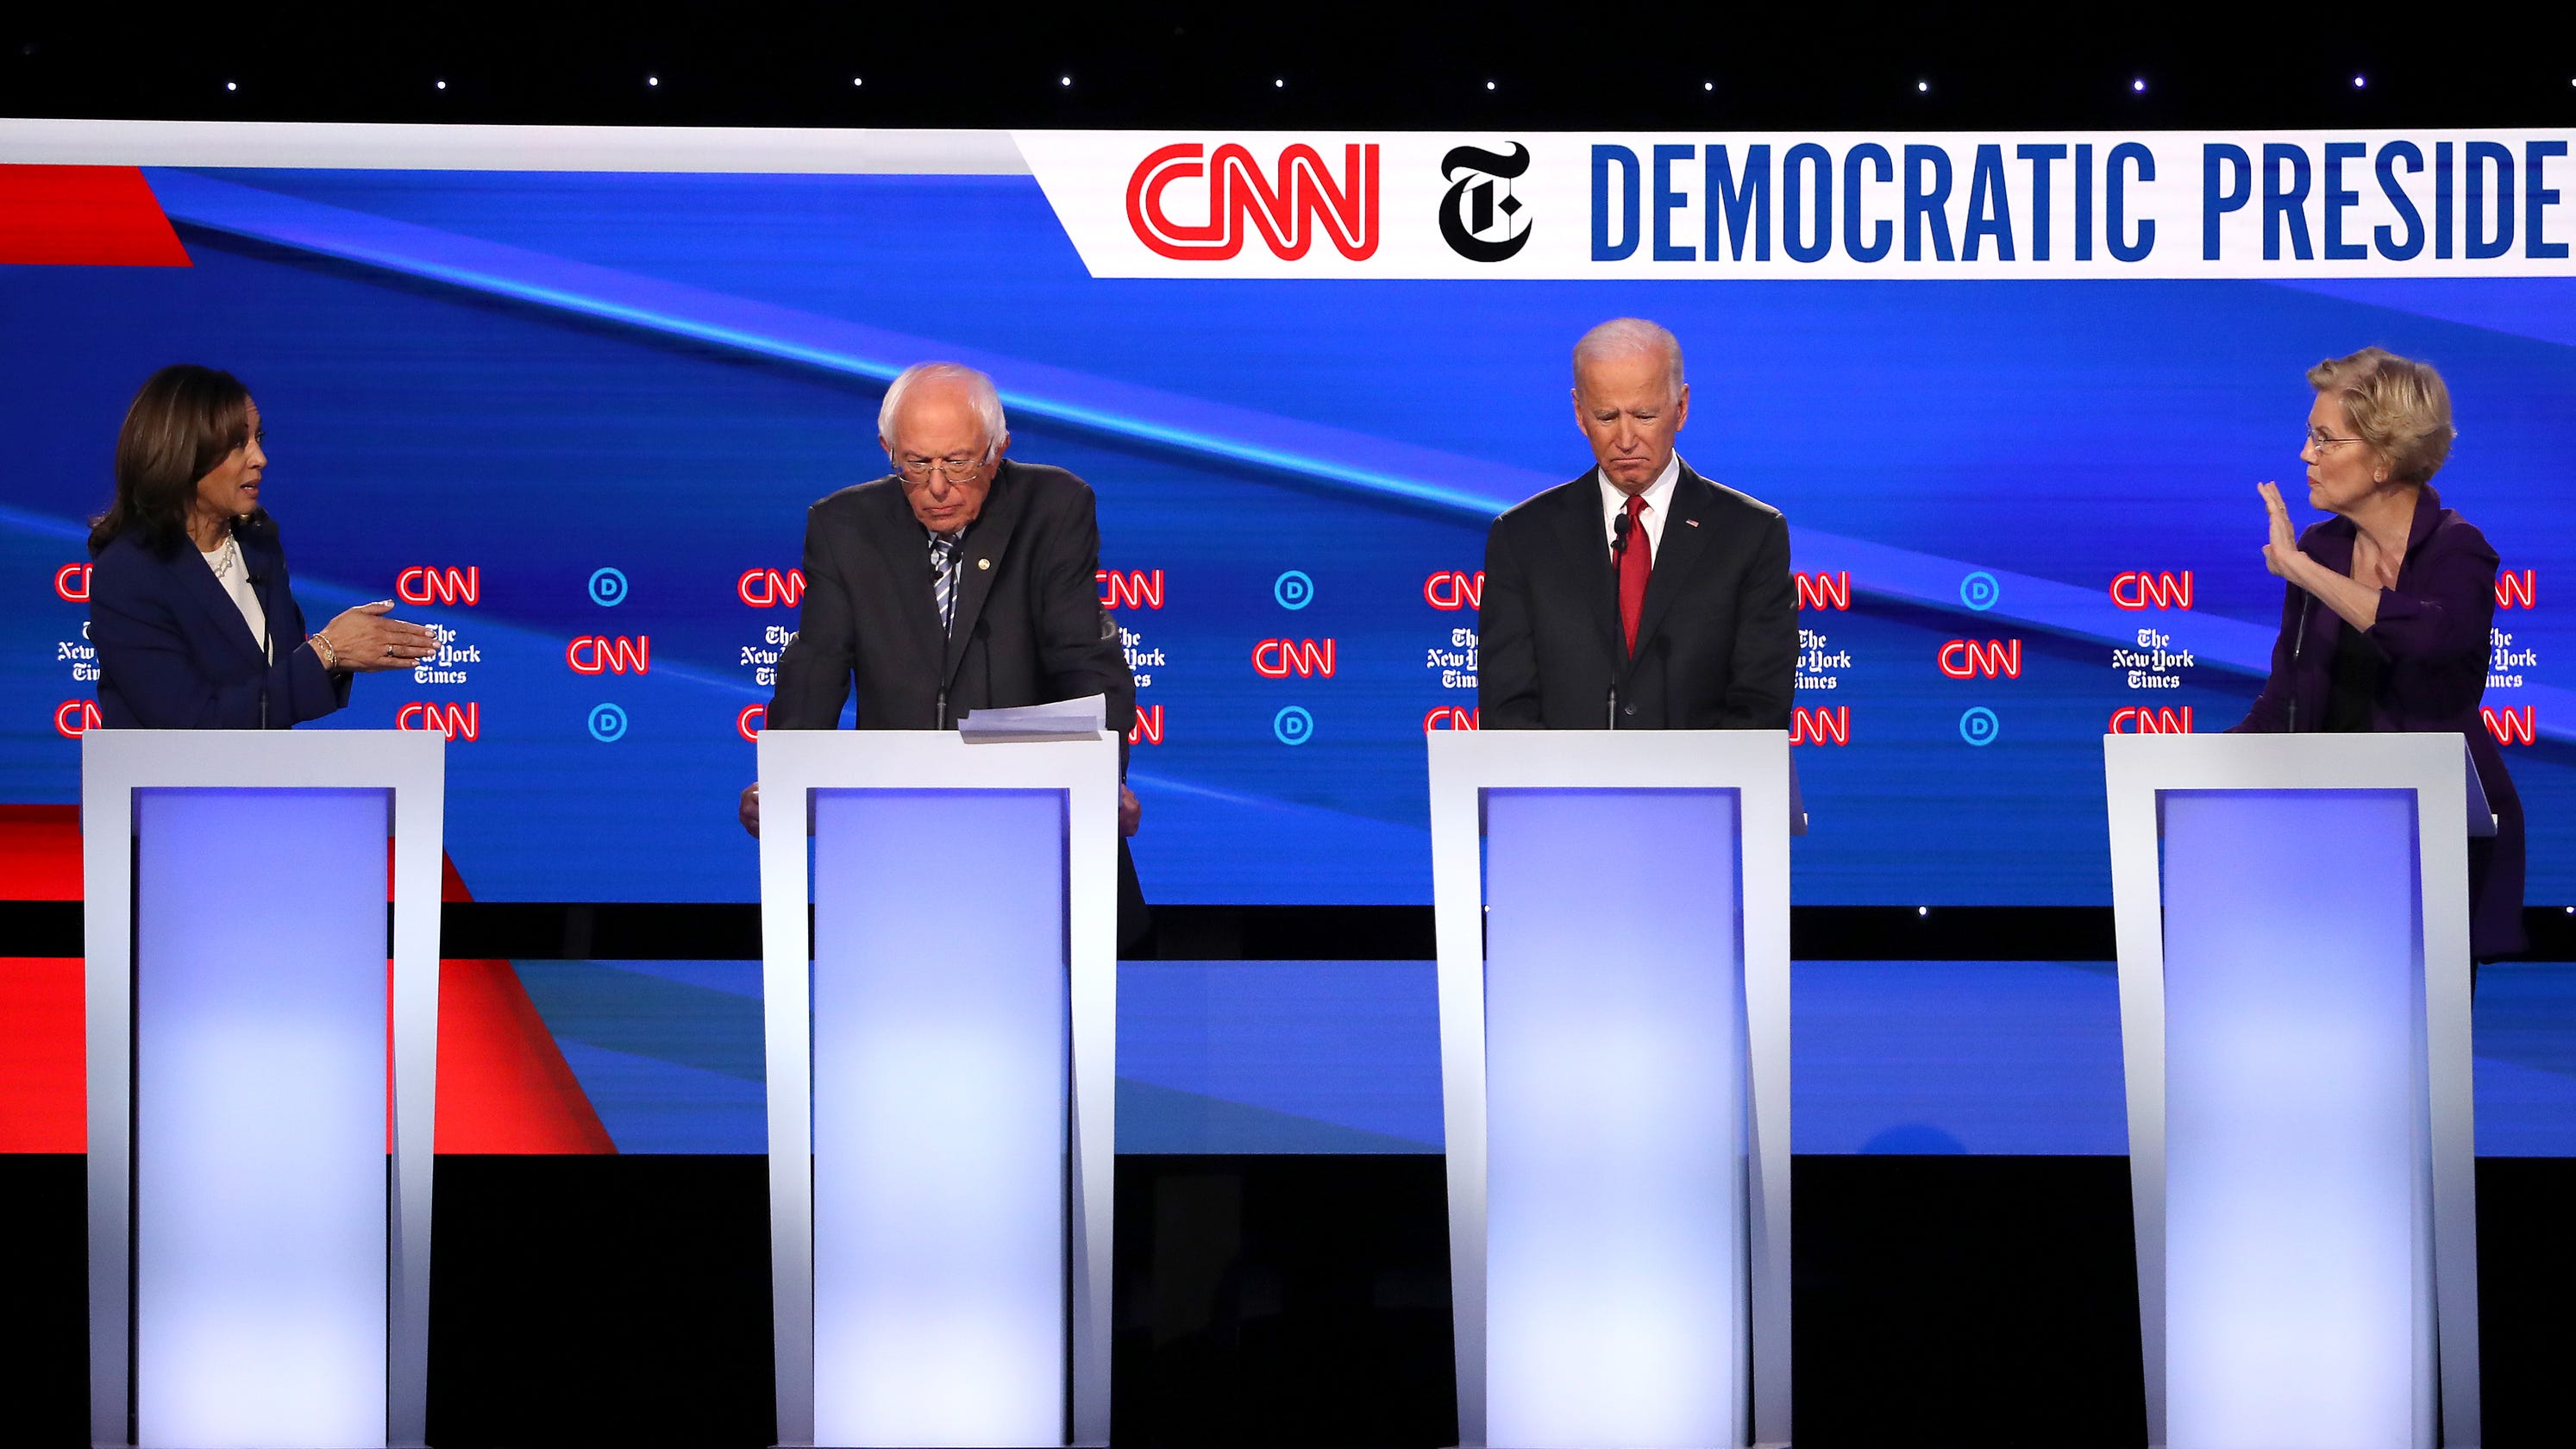 2020 Election: 5 things we learned from the Democratic debate in Ohio thumbnail